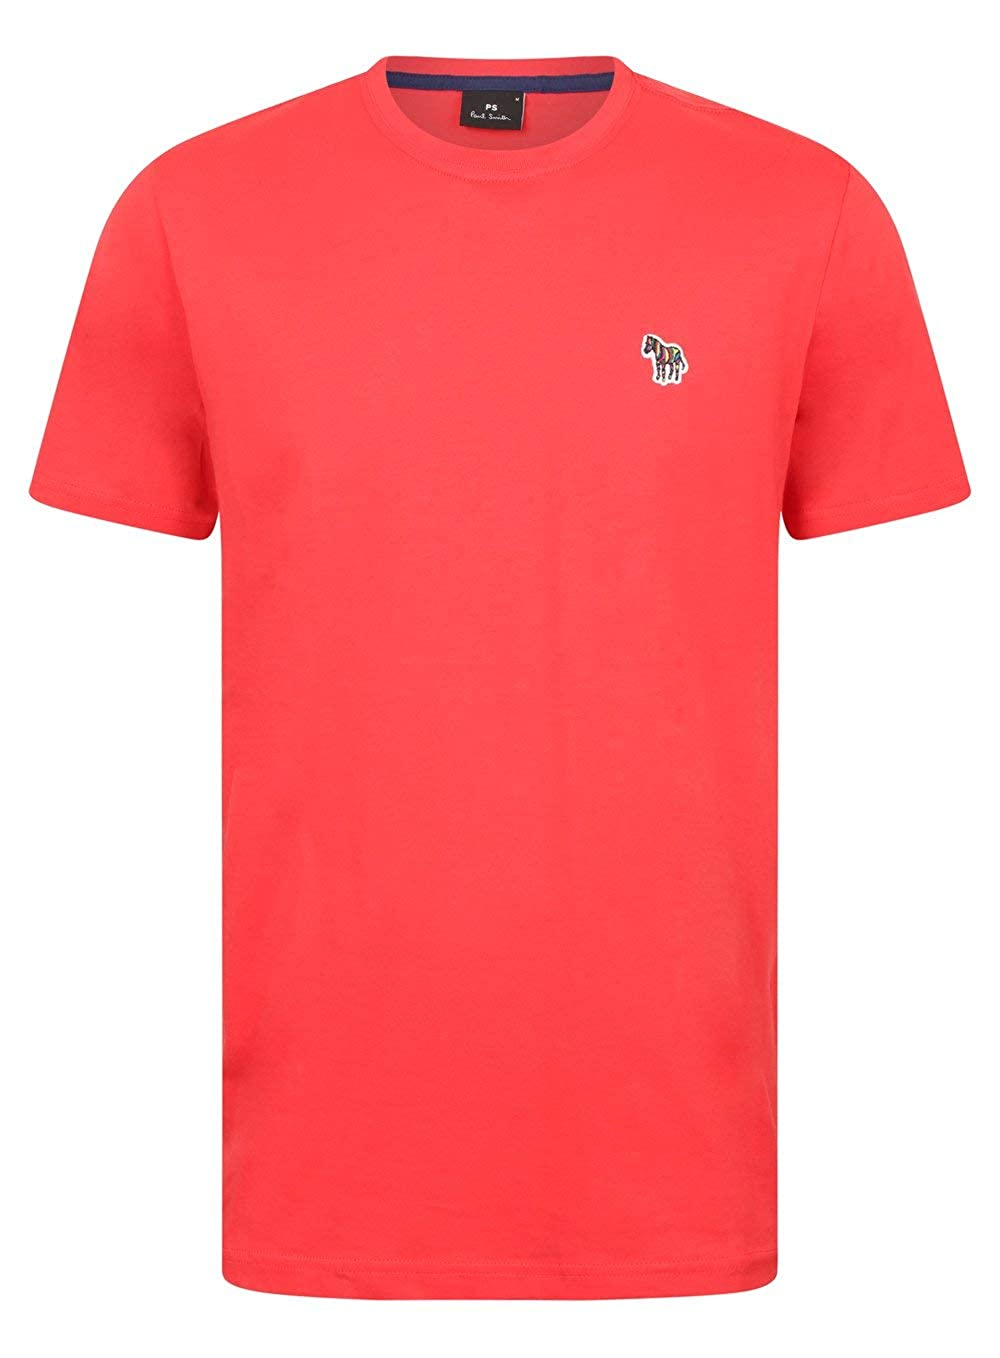 Paul Smith Zebra Badge T-Shirt in Raspberry Red